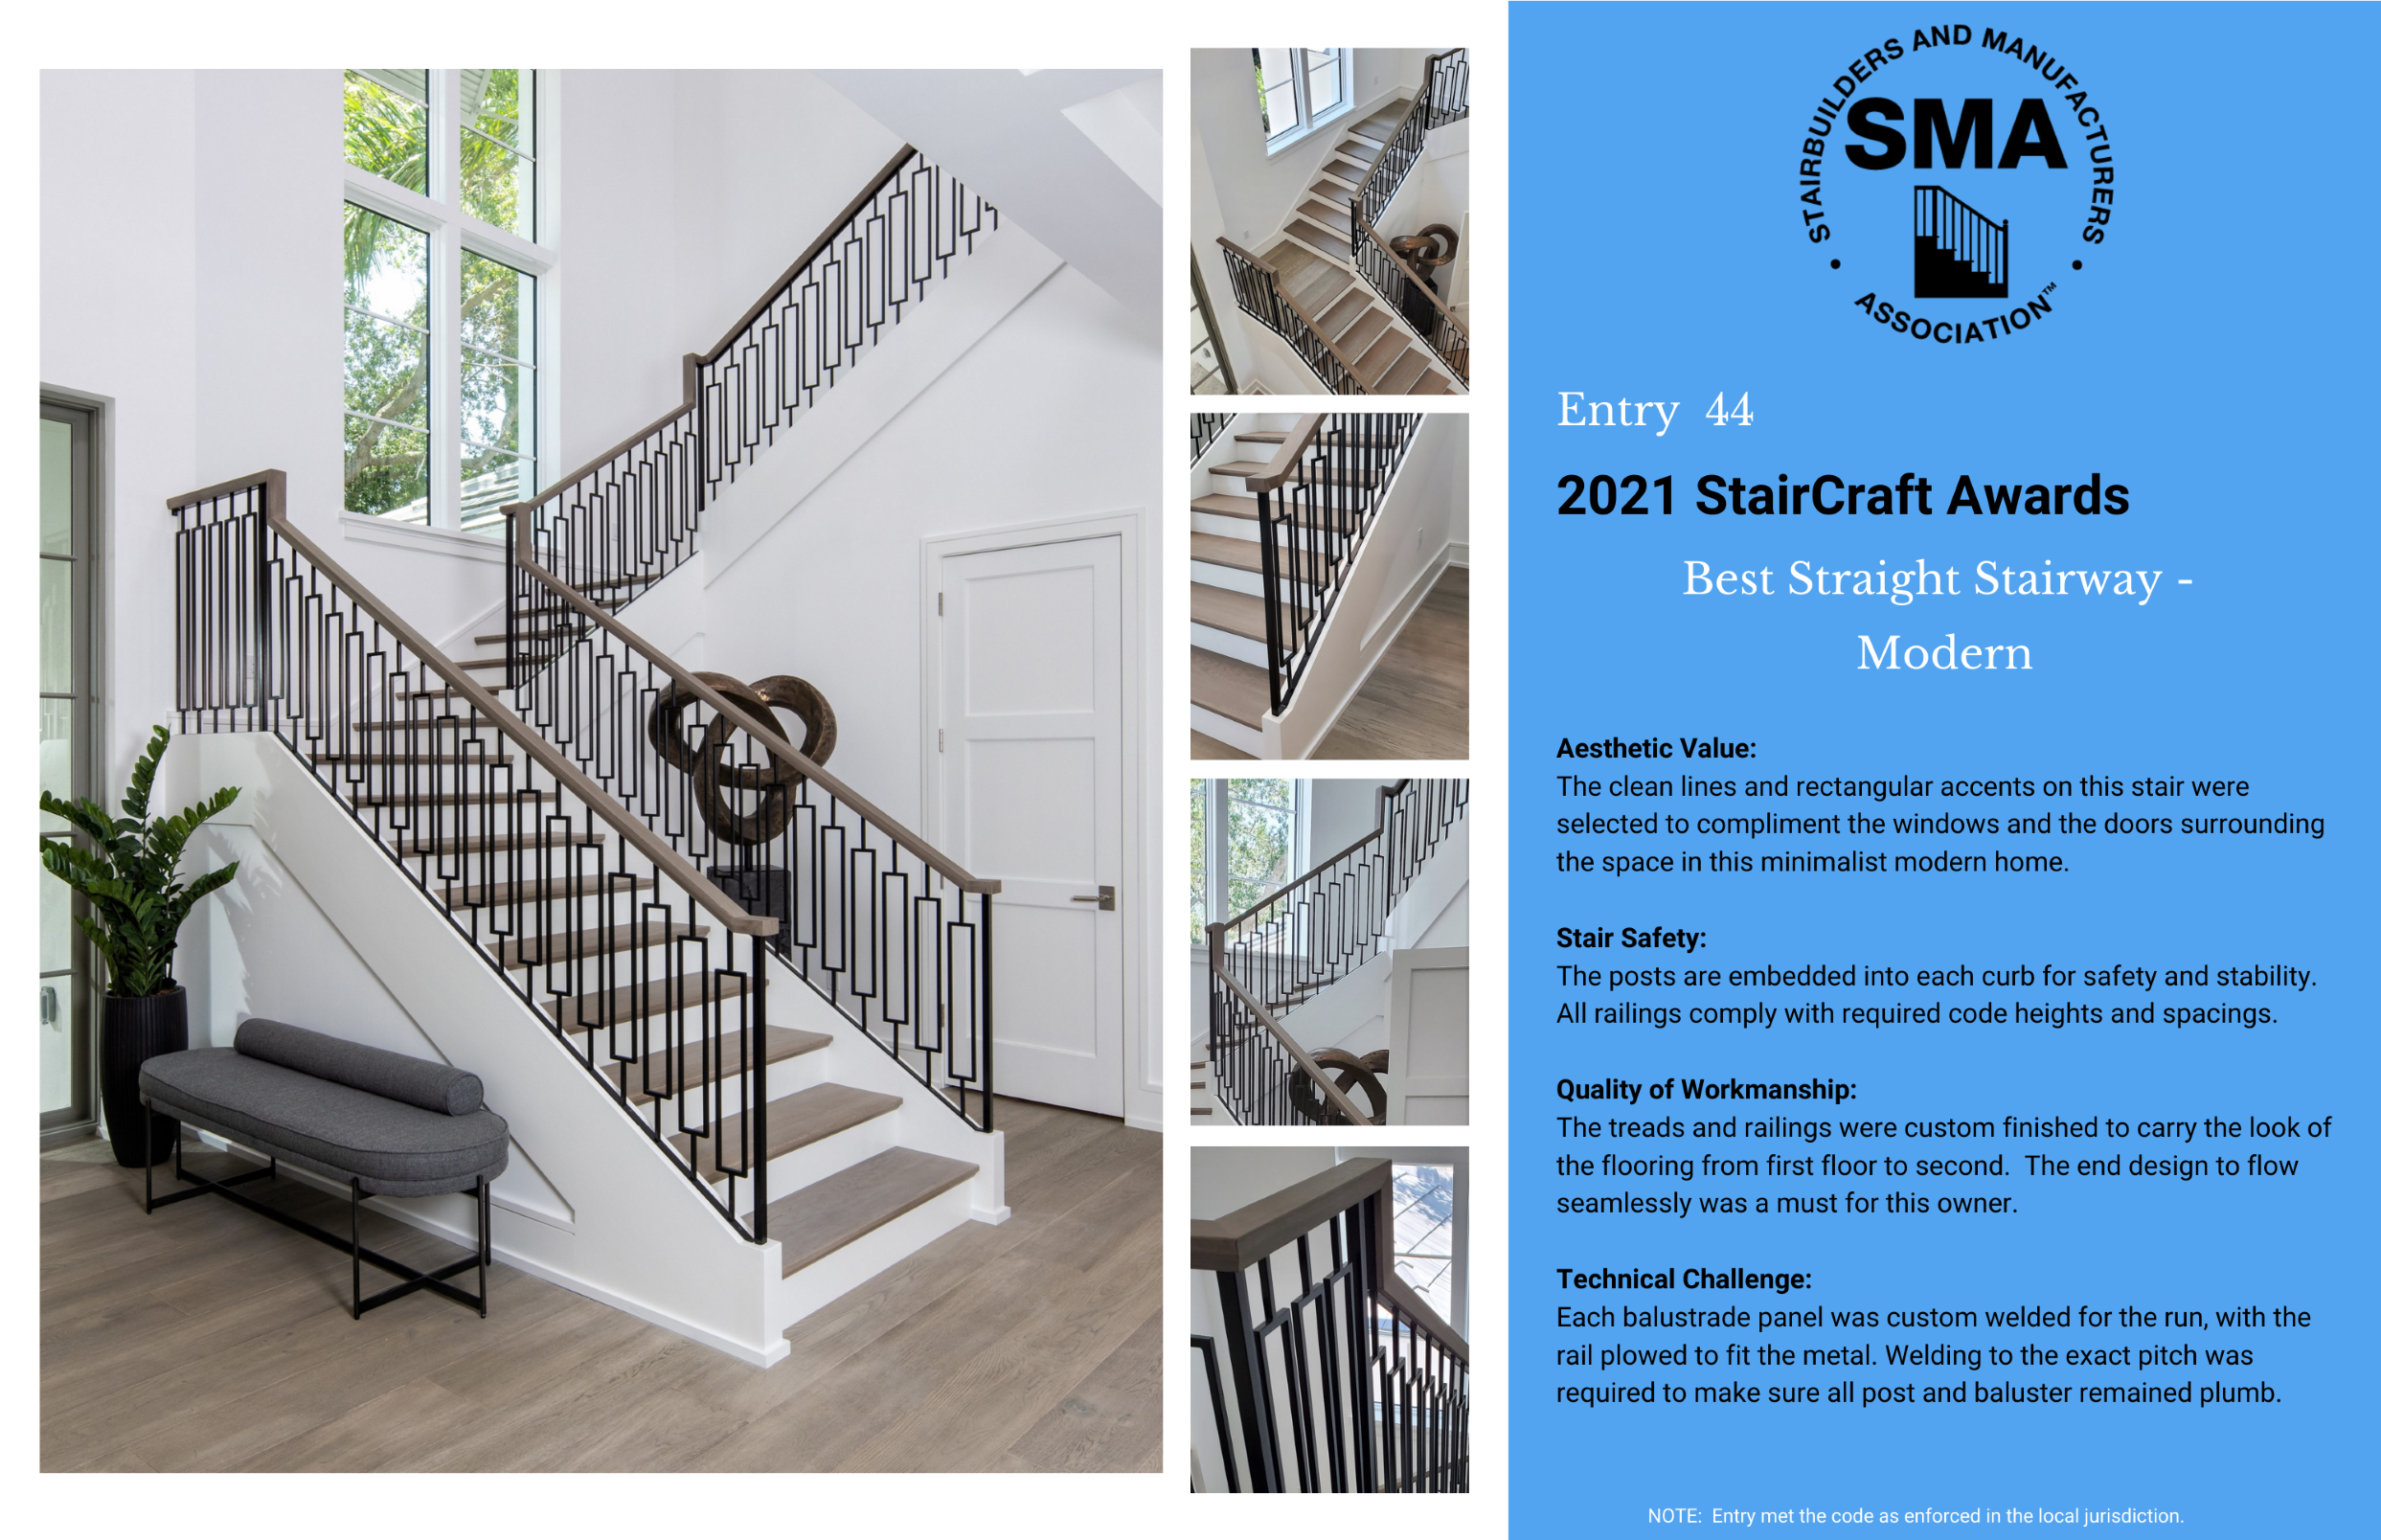 2021 StairCraft Awards Entry 44